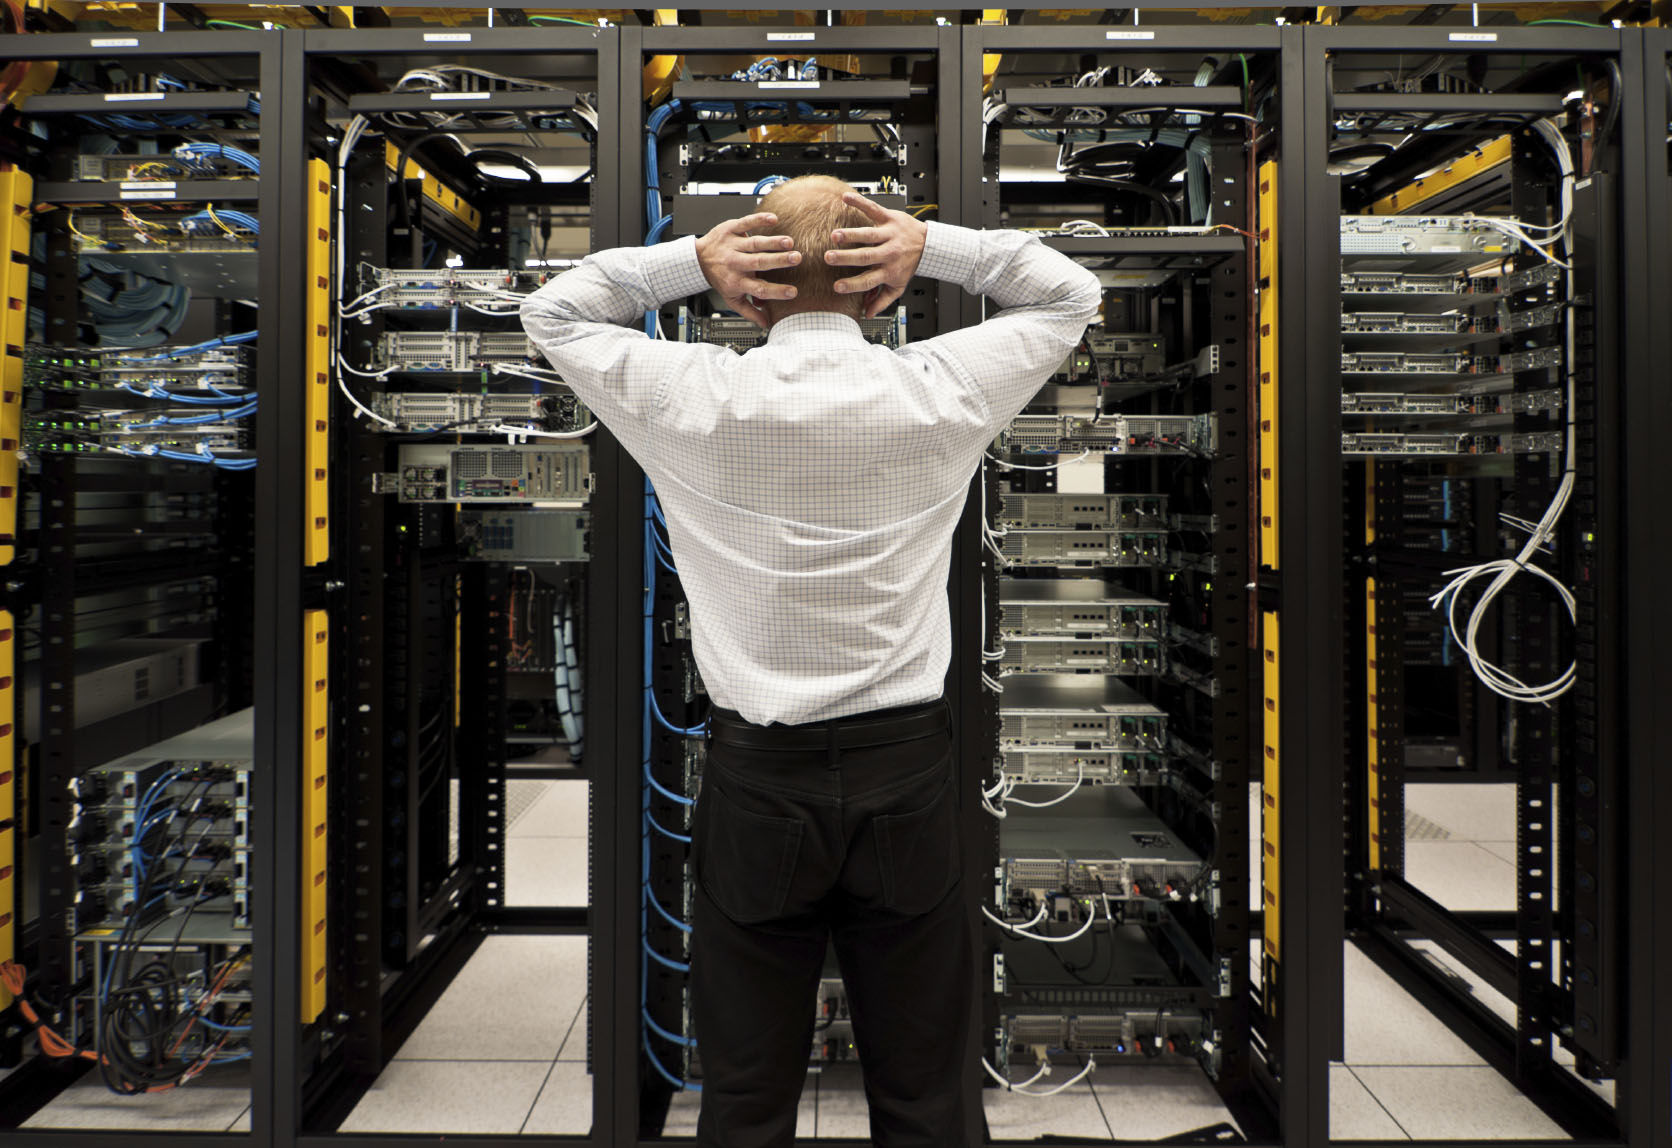 Stock photo of an engineer in a datacenter's server farm